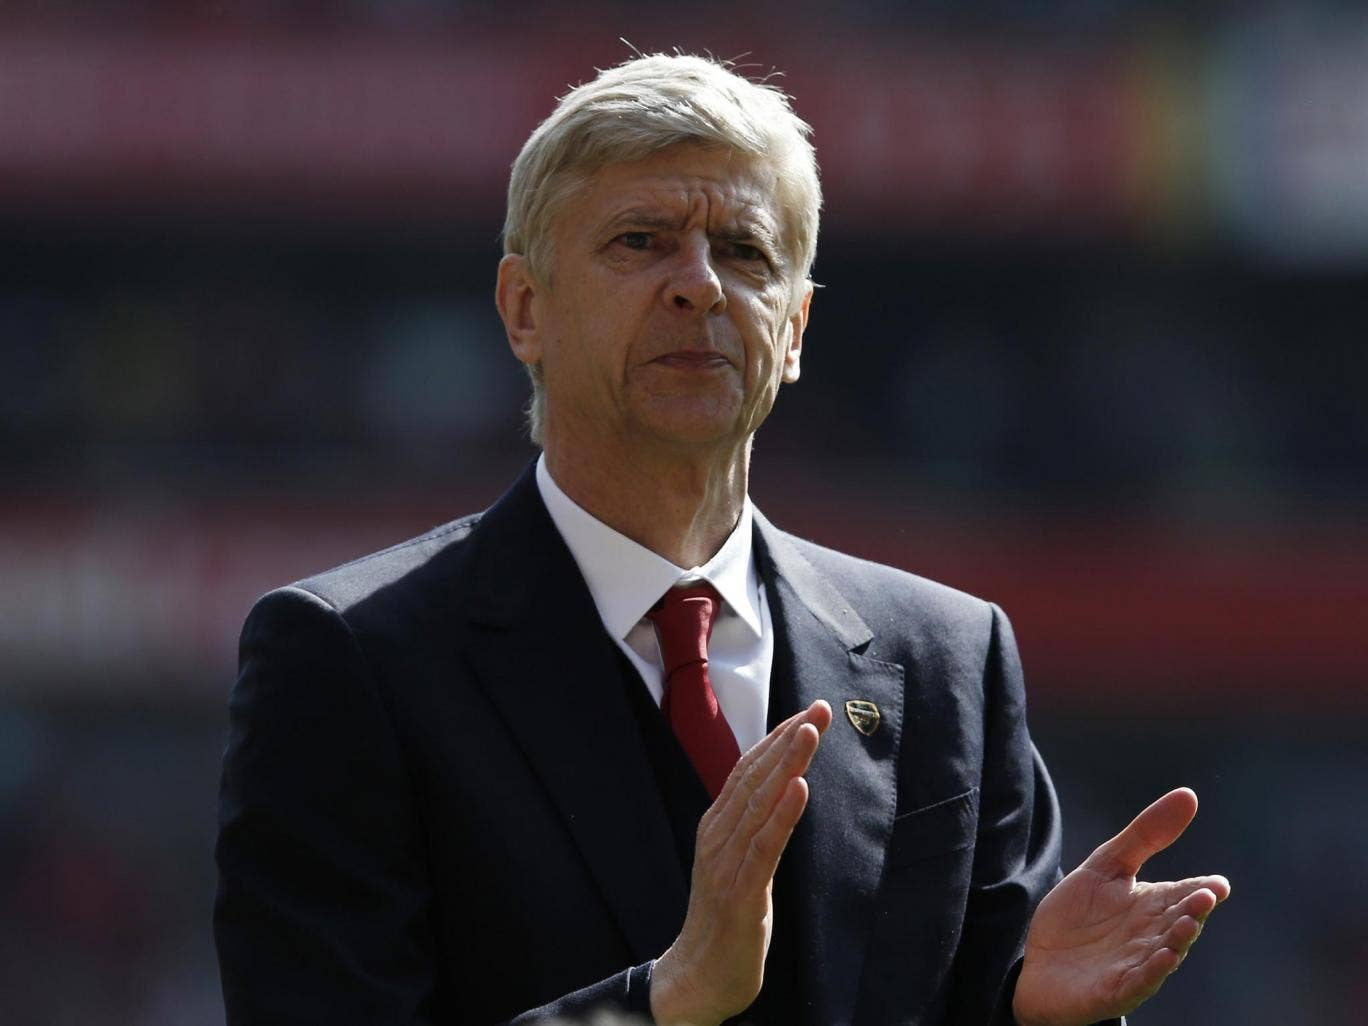 Arsene Wenger believes his squad need 'hard work' and not big signings to challenge for next season's Premier League